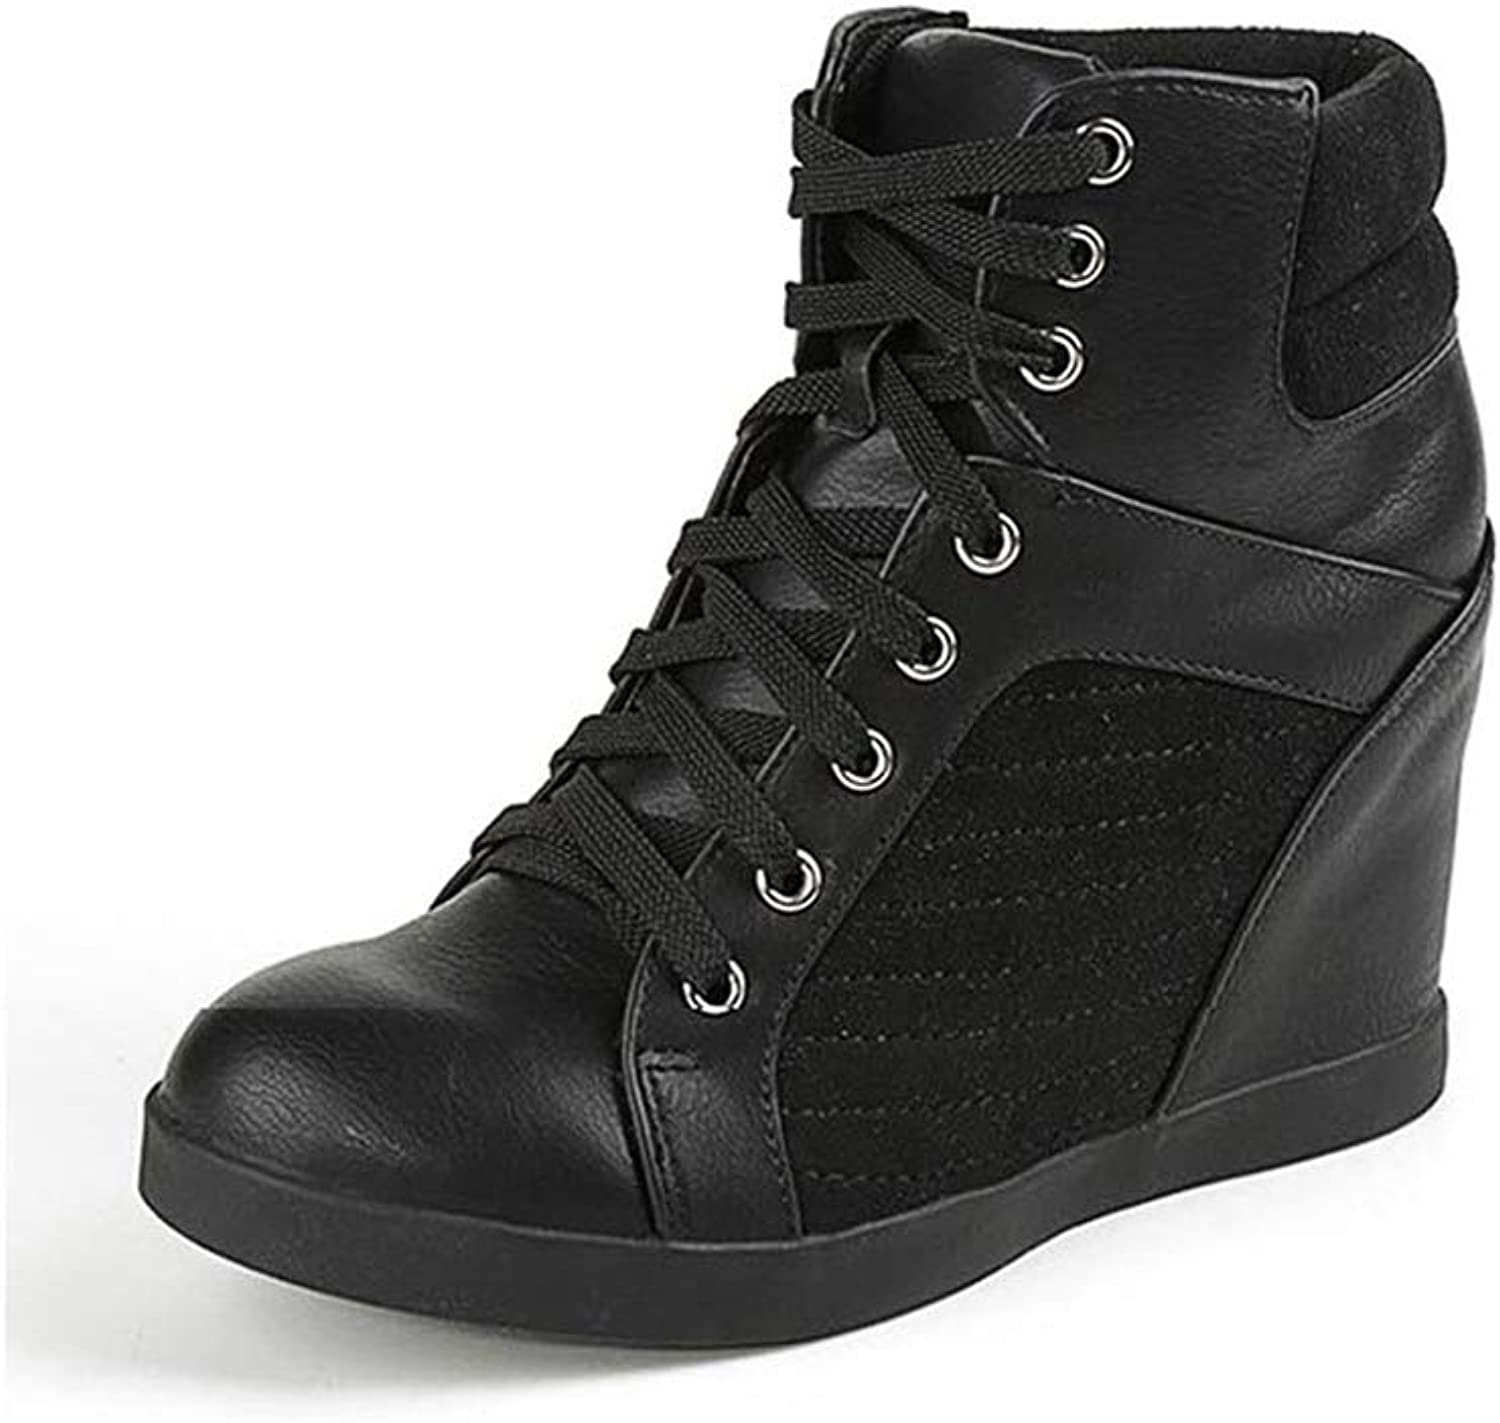 High top Wedge Sneakers Women Hidden Heels Casual Walking shoes Height Increasing Lace-up Boots